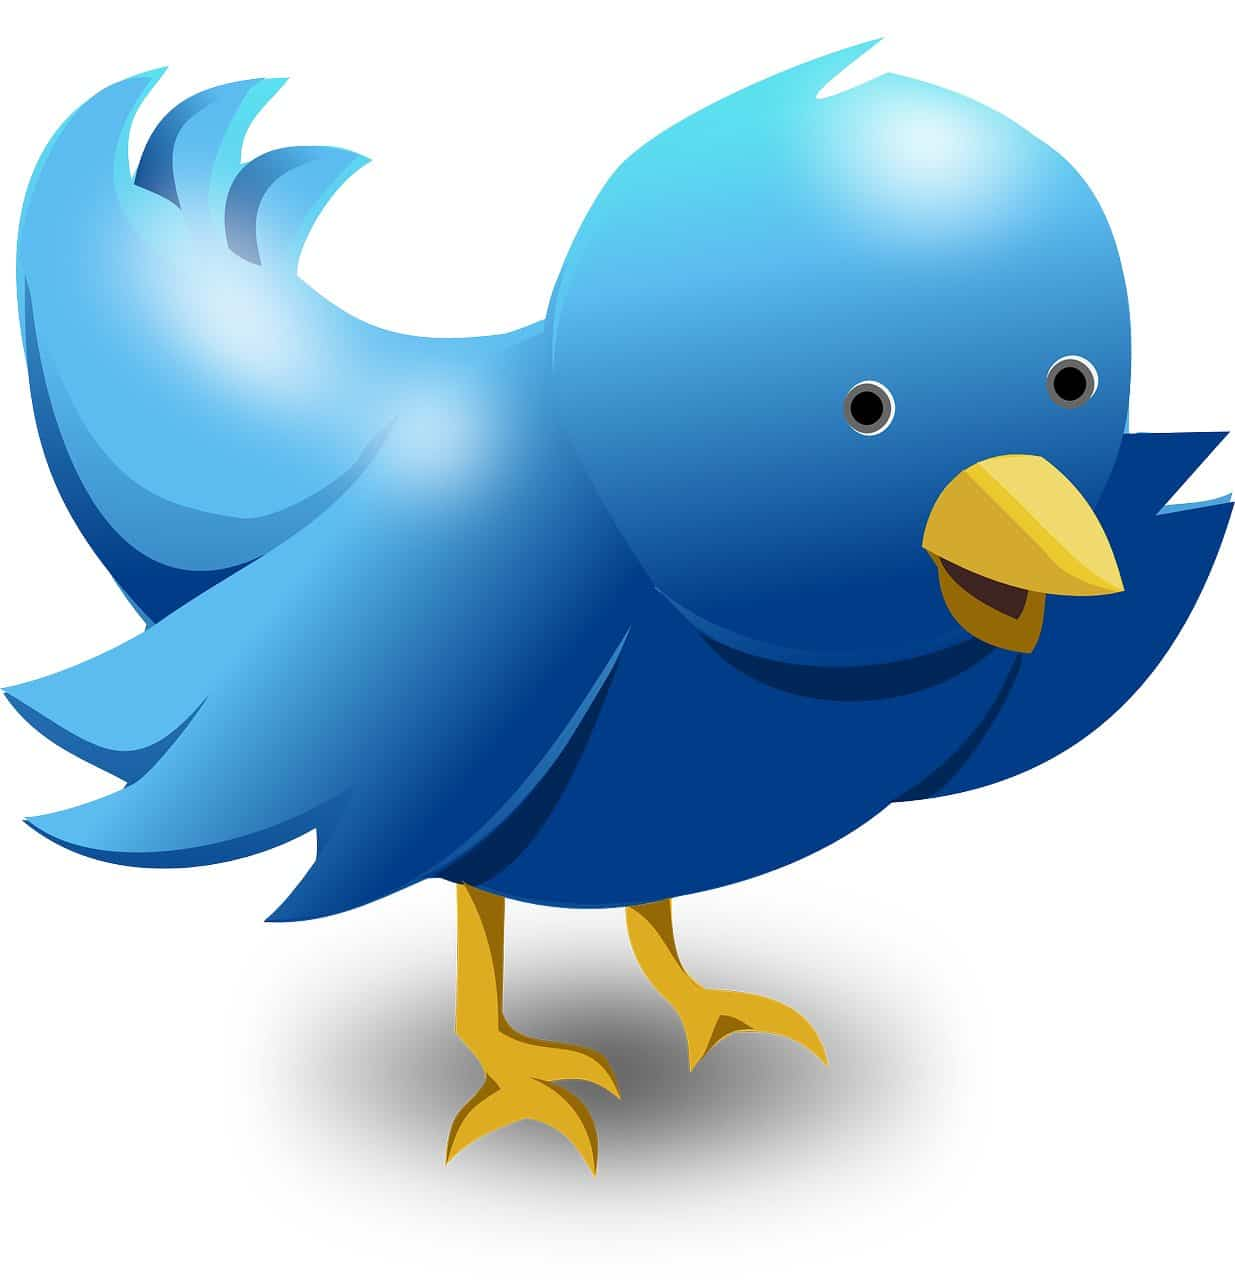 Twitter Tips and Tricks for Launching Business on Twitter